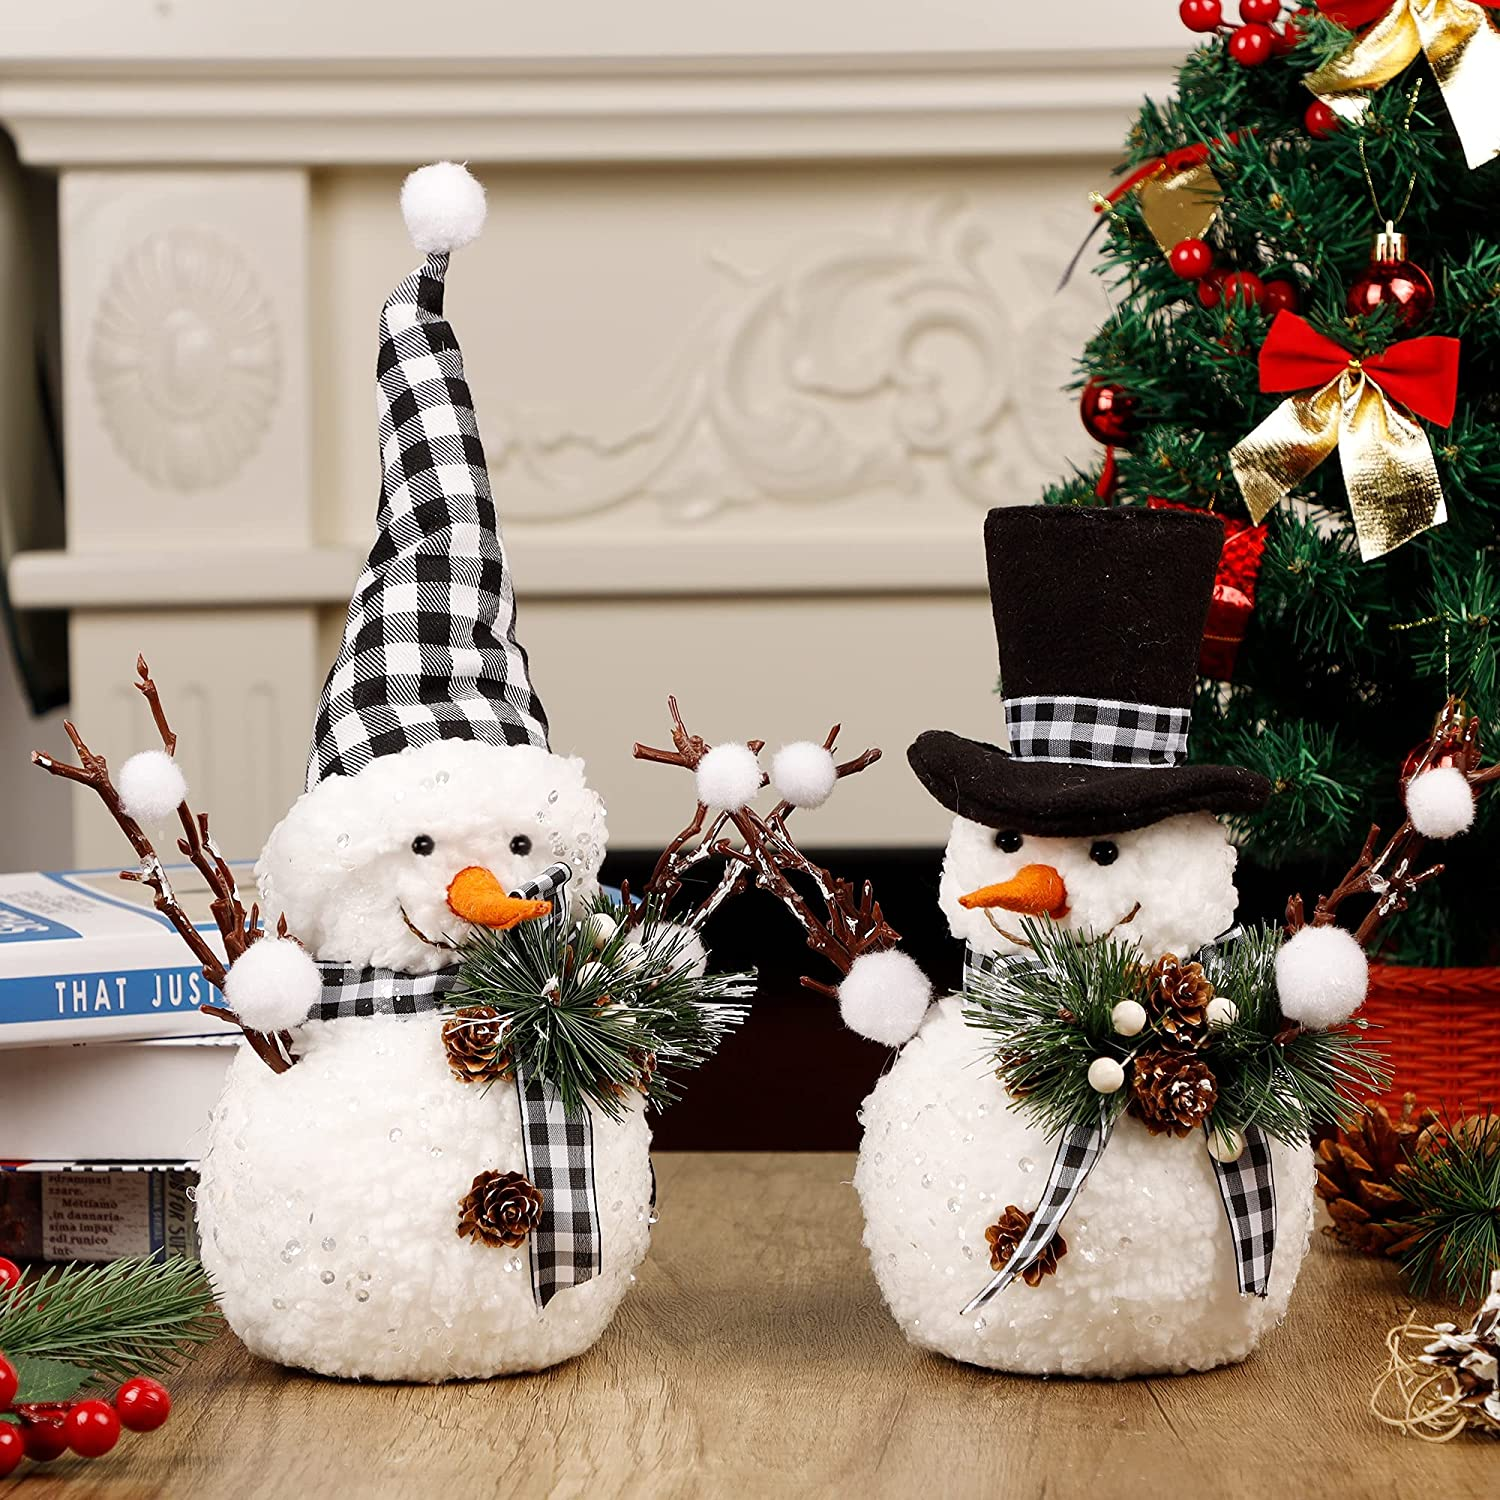 winemana Christmas Table Decorations, Set of 2 Snowman with Pine Cone Twigs, Winter Tabletop Decor for Indoor Home Kitchen Fireplace Office Room Xmas Gifts Holiday Party